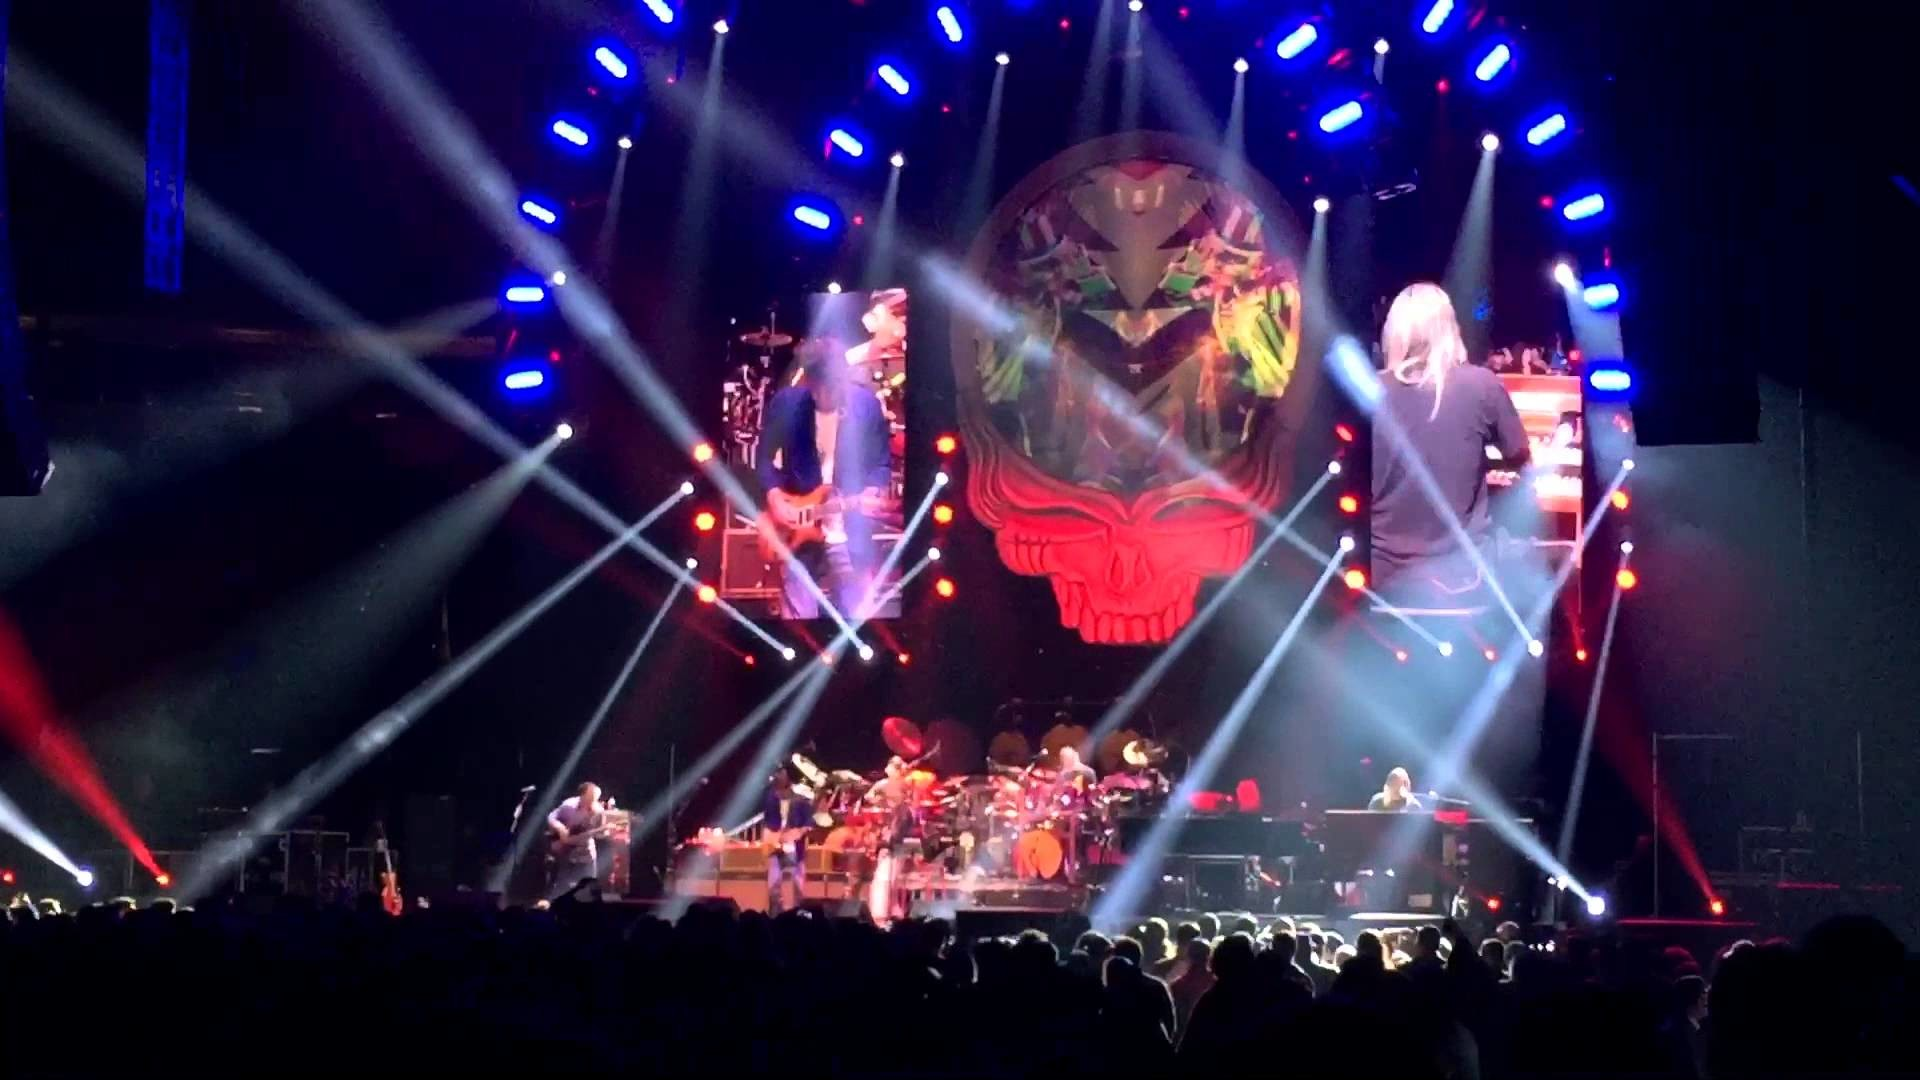 1920x1080 Dead & Company - U.S. Blues - 11/11/15 - First Niagara Center - Buffalo - Grateful  Dead